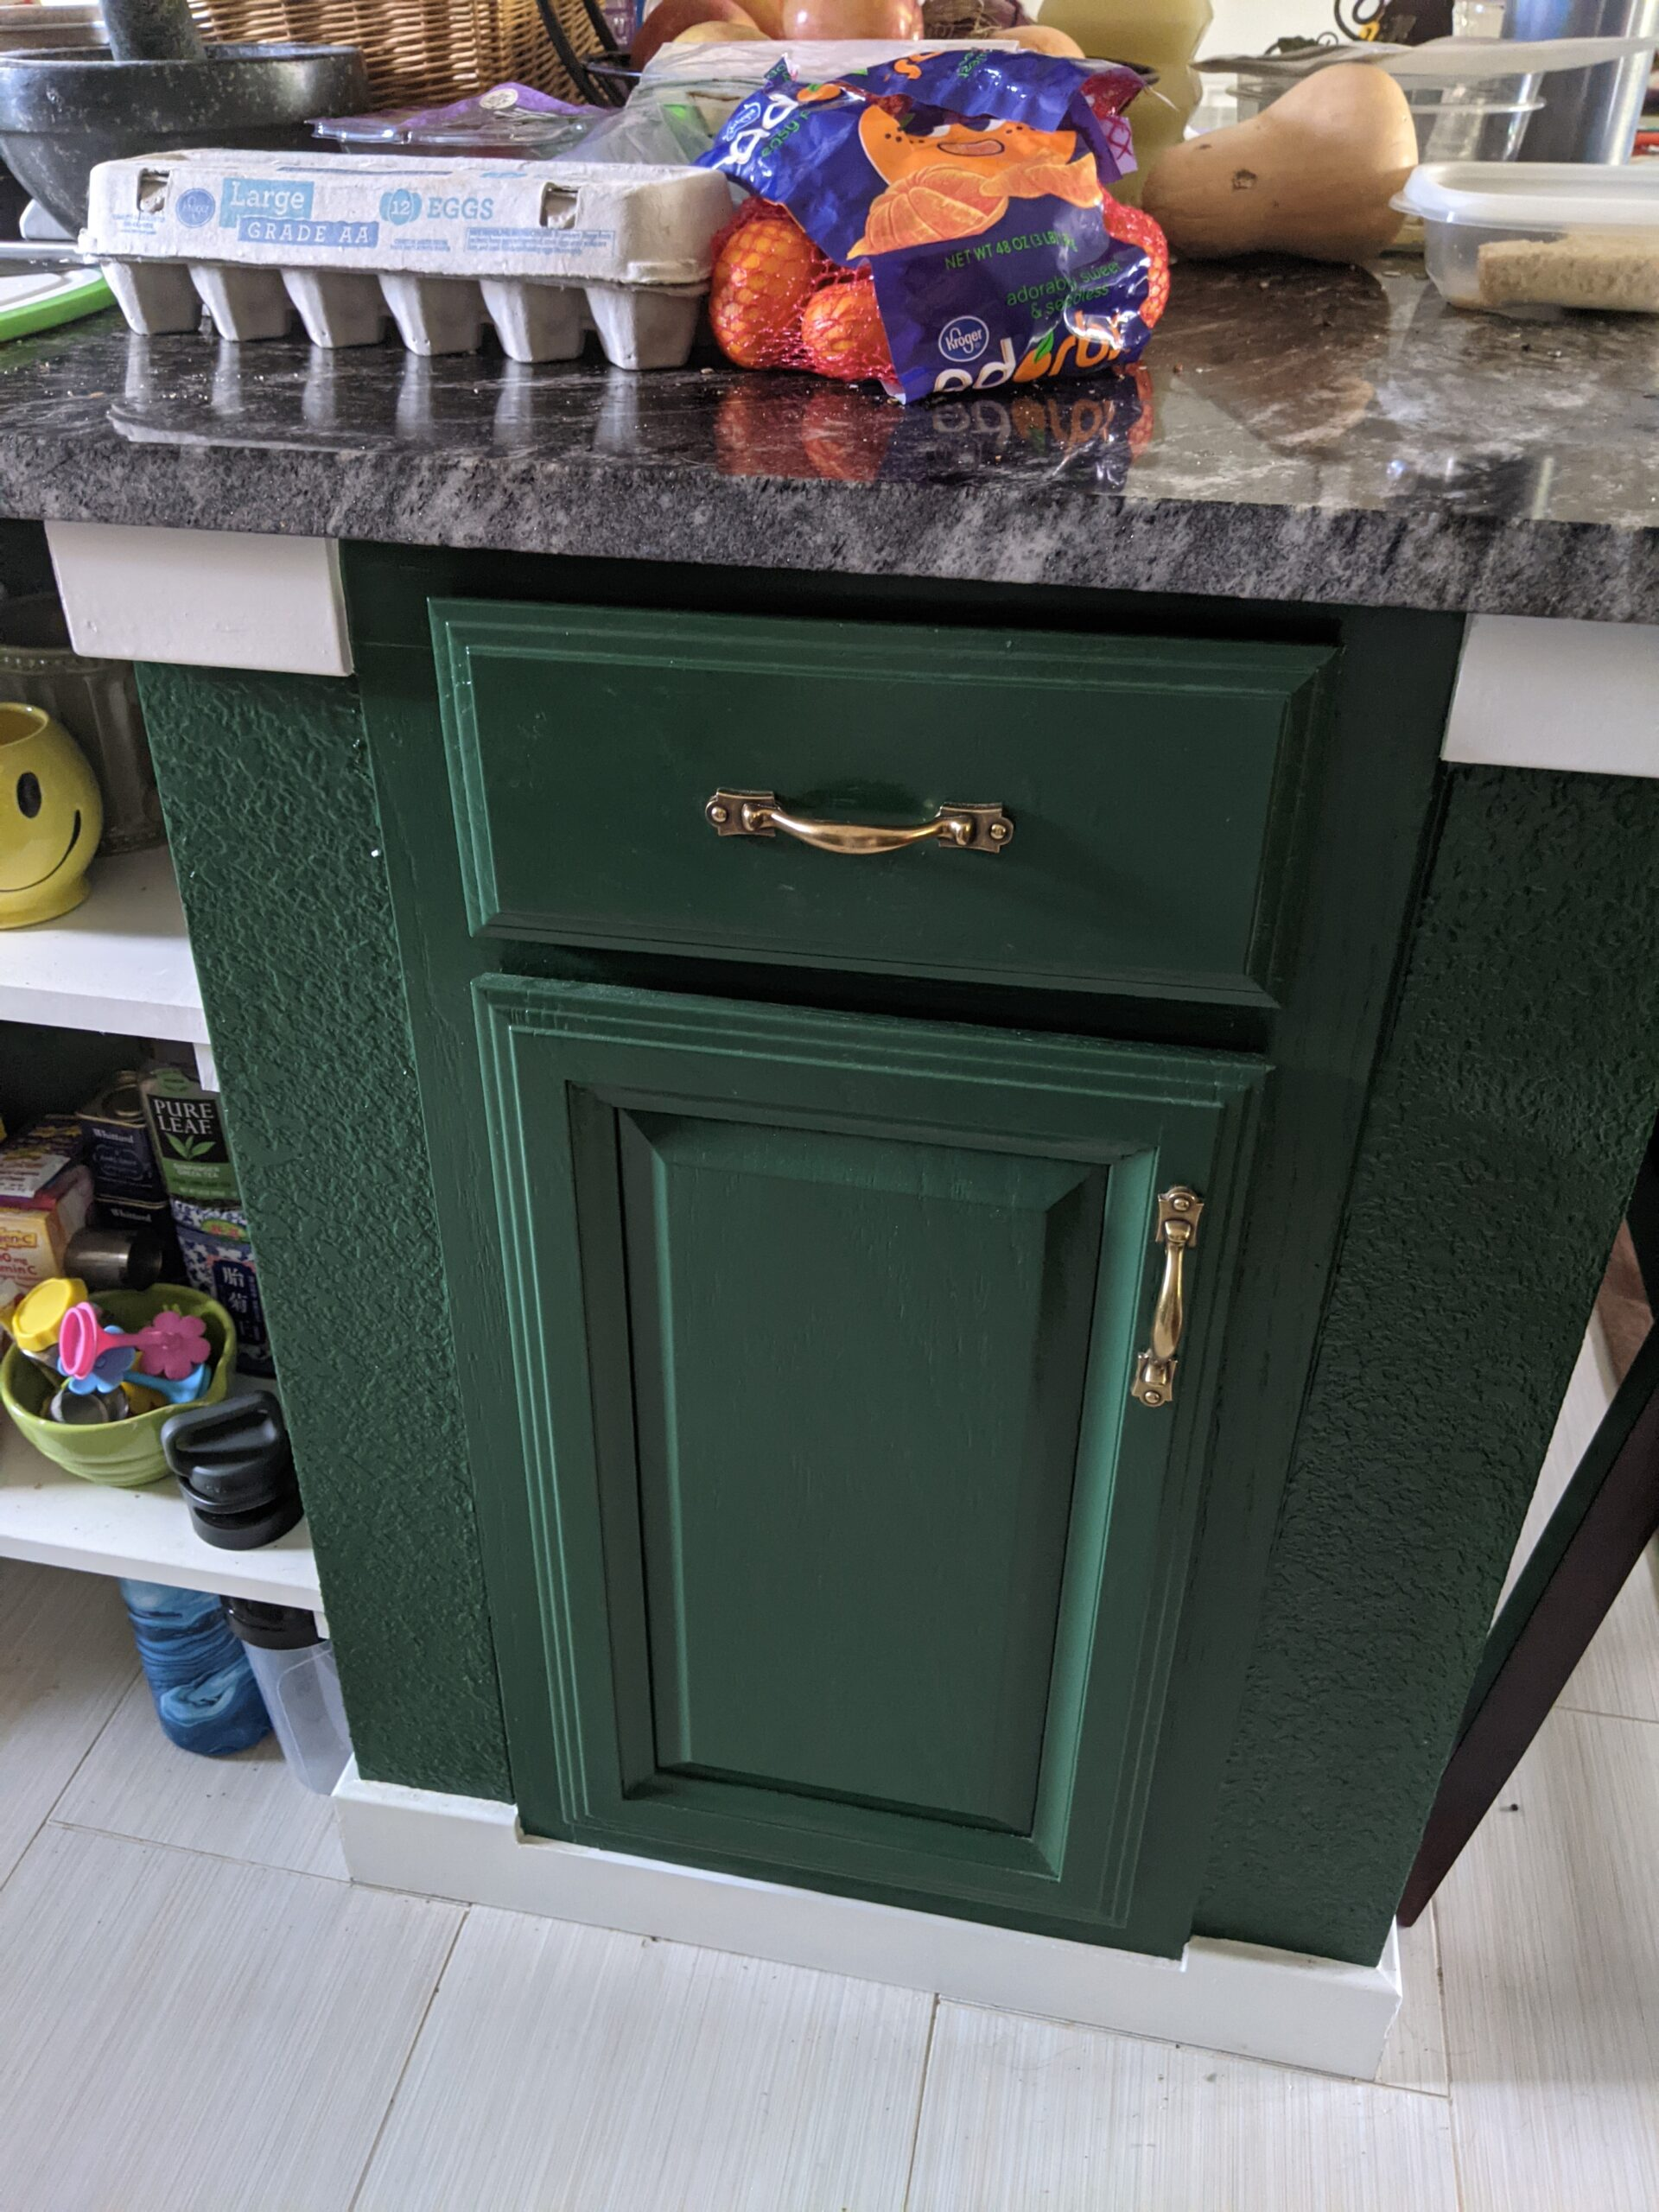 AFTER We reused the cabinets in the new kitchen layout, but we updated the look with the lower cabinets painted green and uppers painted white.